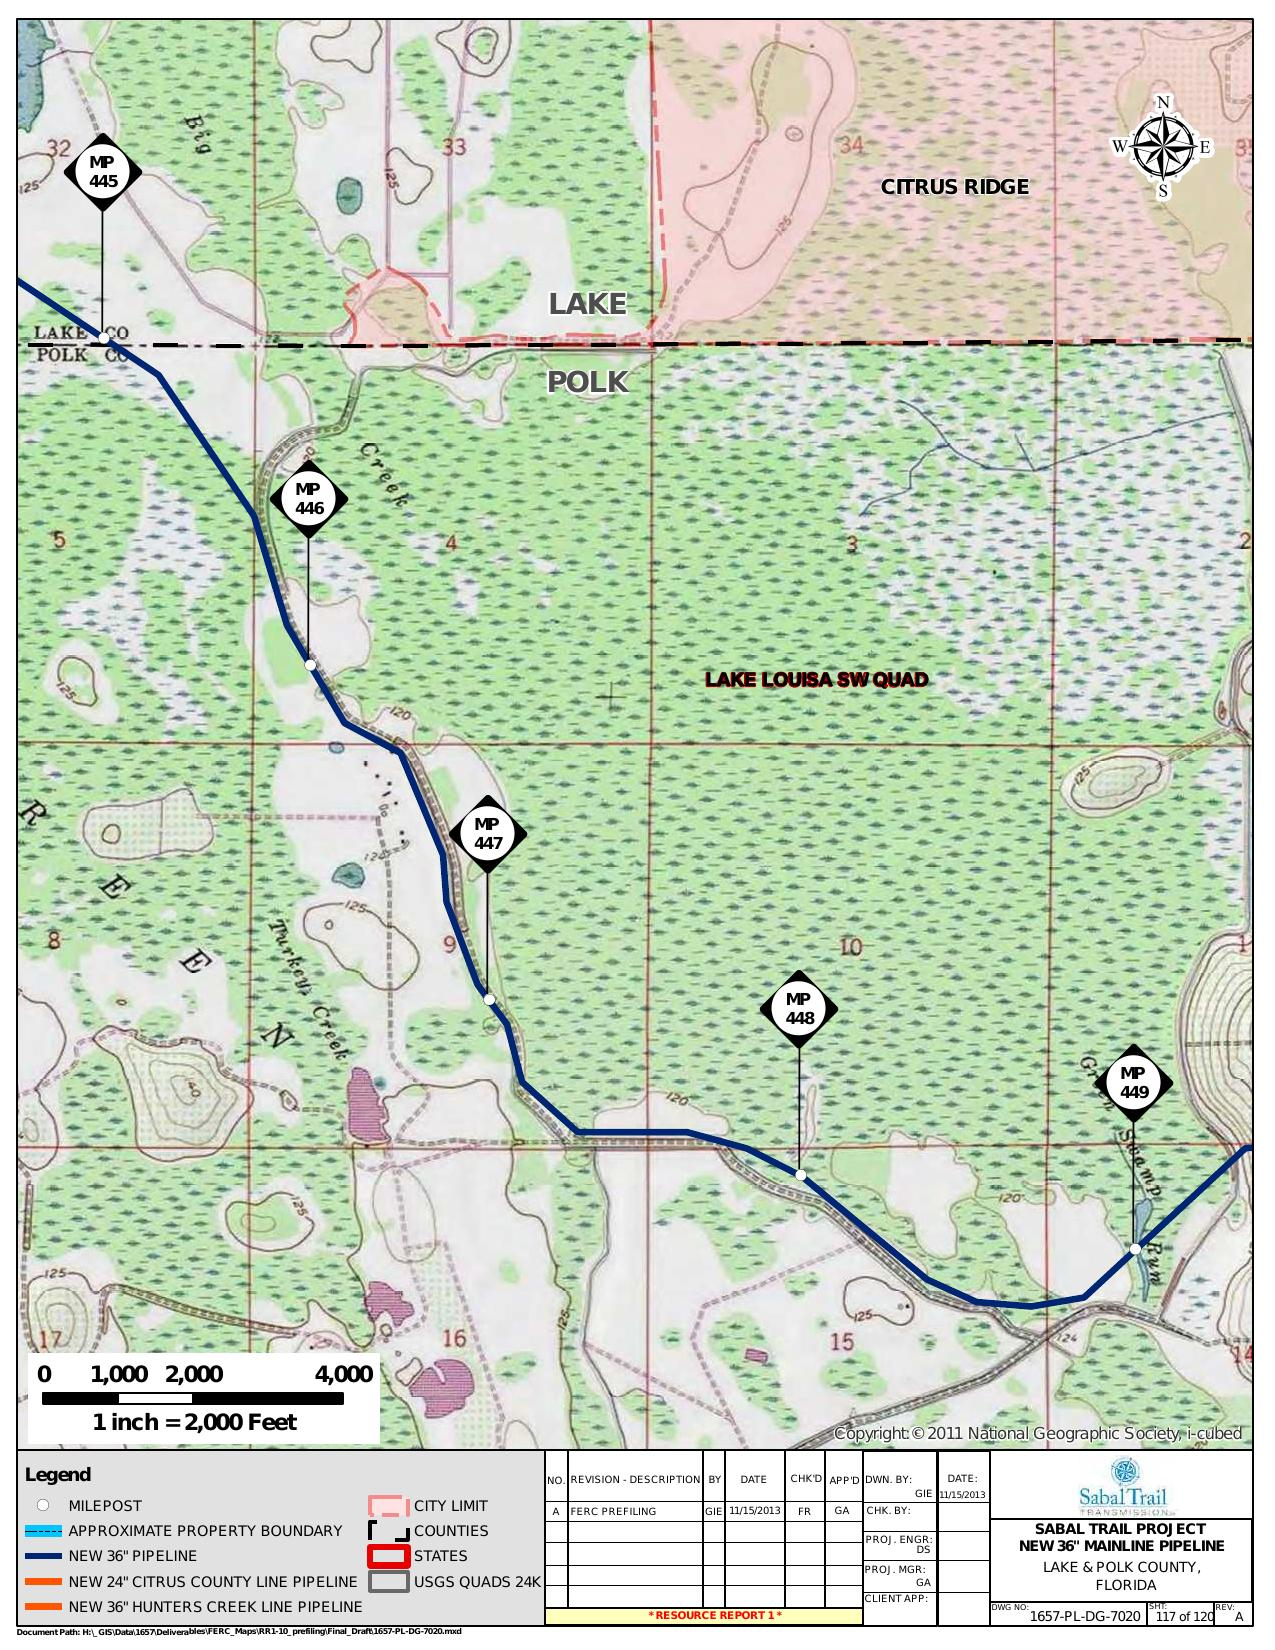 Green Swamp Run, Lake and Polk County, Florida, in General Project Description, by SpectraBusters, for FERC Docket No. PF14-1-000, 15 November 2013, converted by SpectraBusters